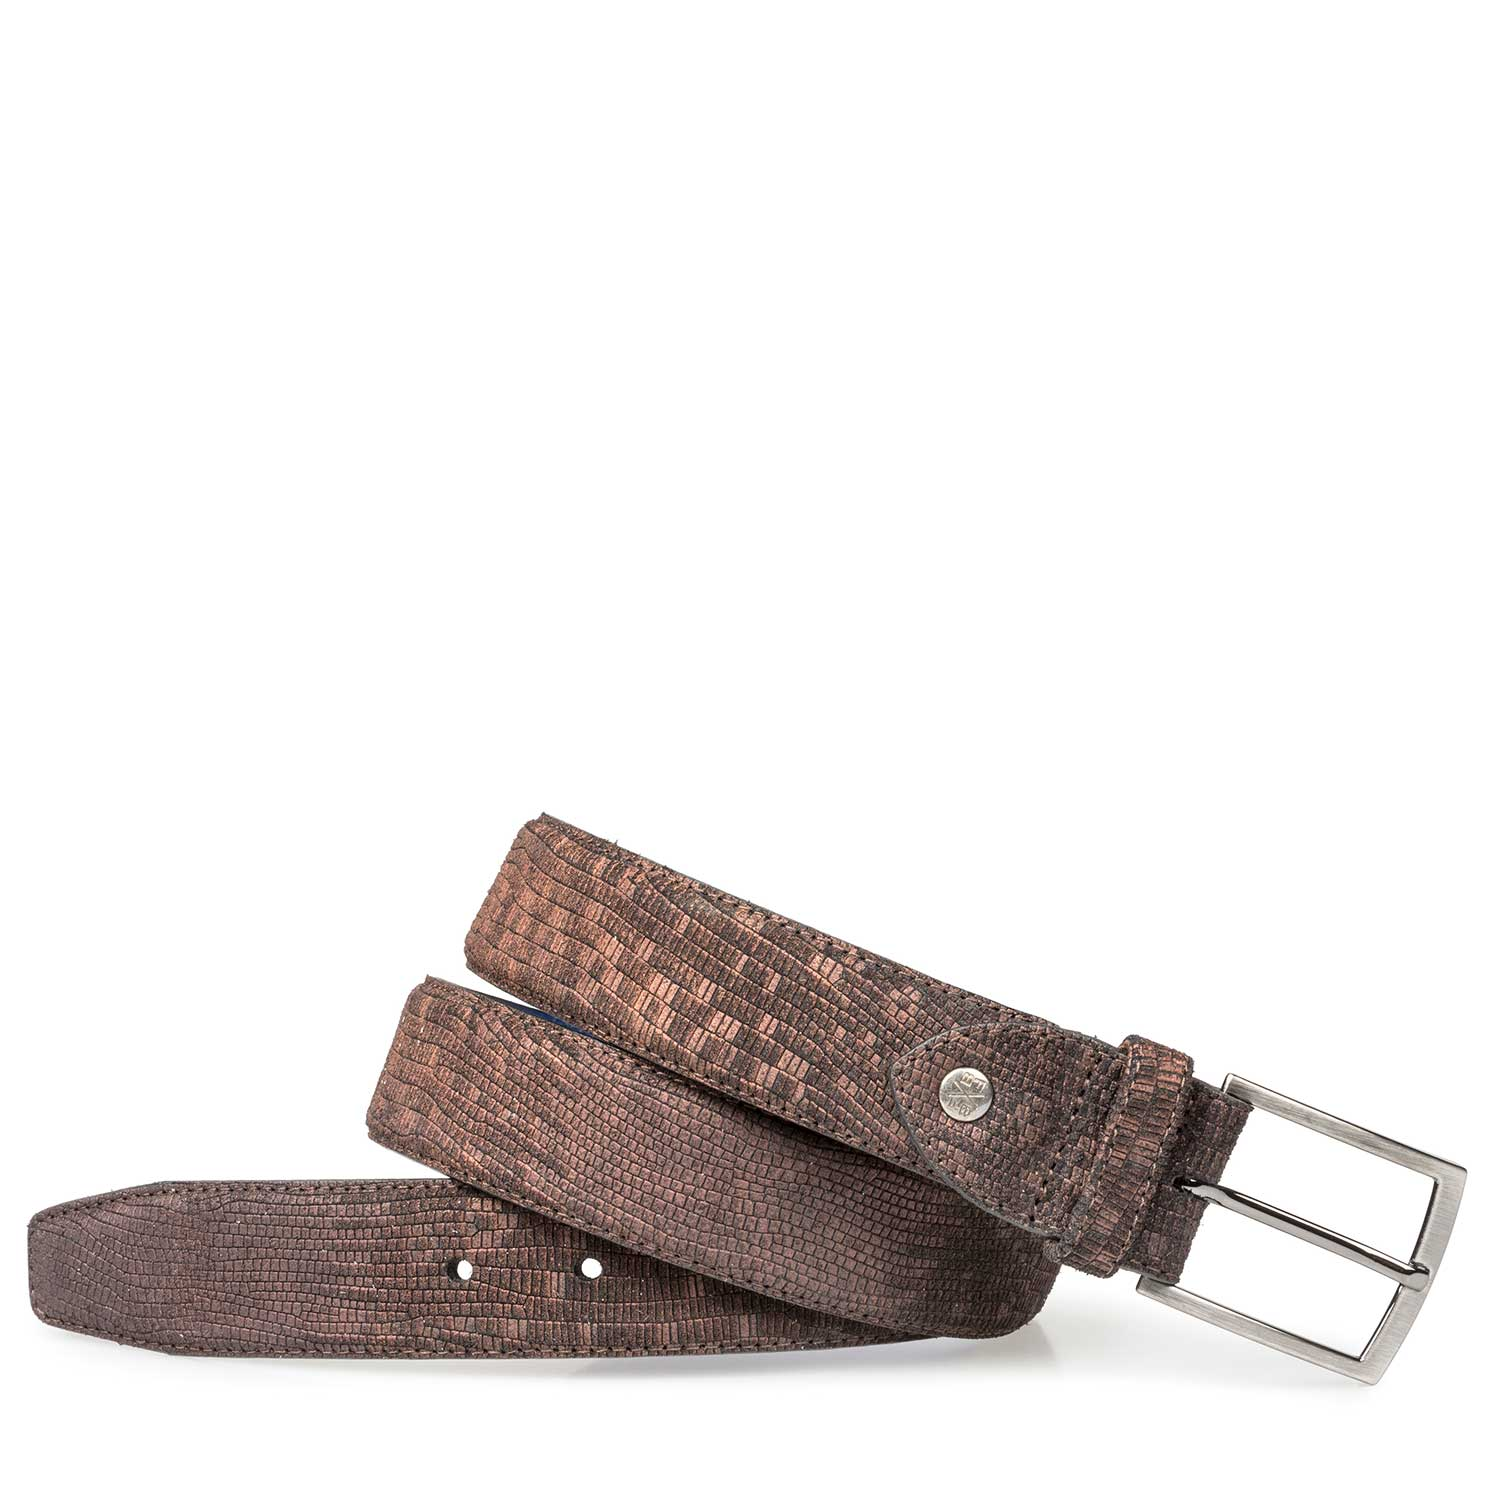 75190/14 - Brown suede leather belt with structural pattern